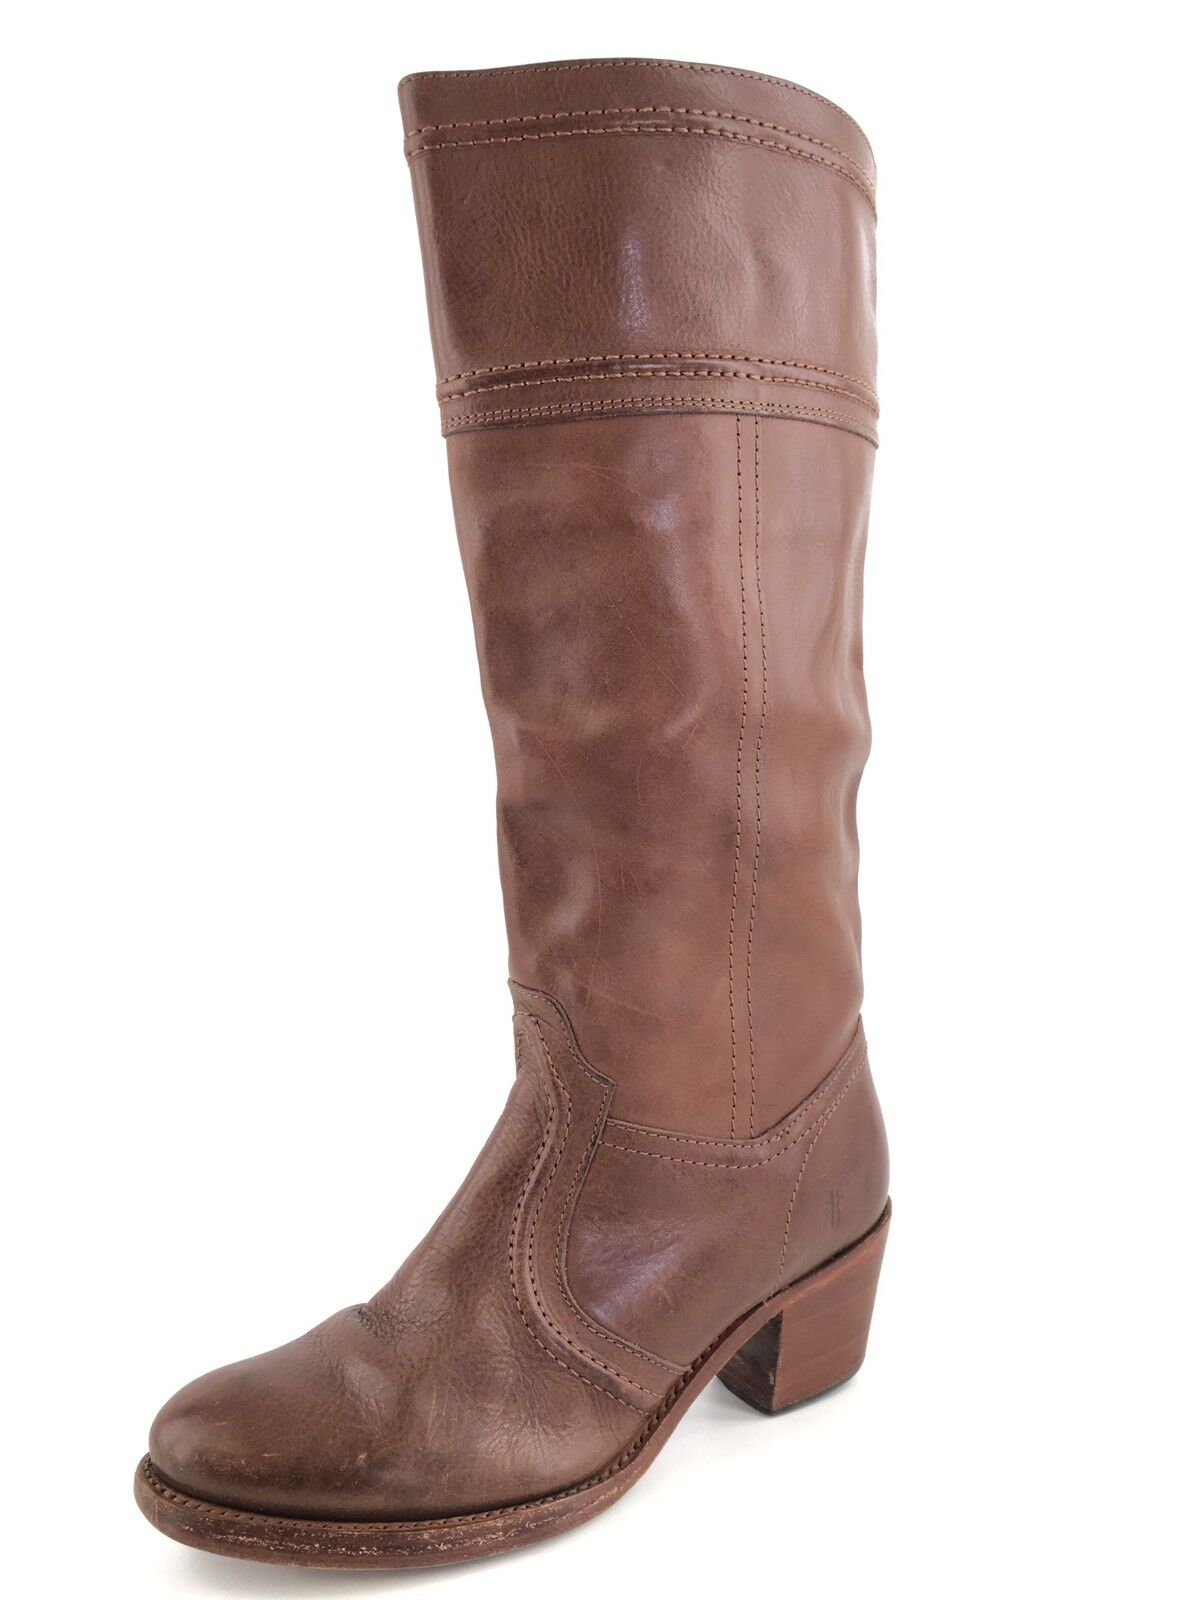 FRYE Jane 14L Cognac Leather Knee High Riding Boots Women's Size 7 M